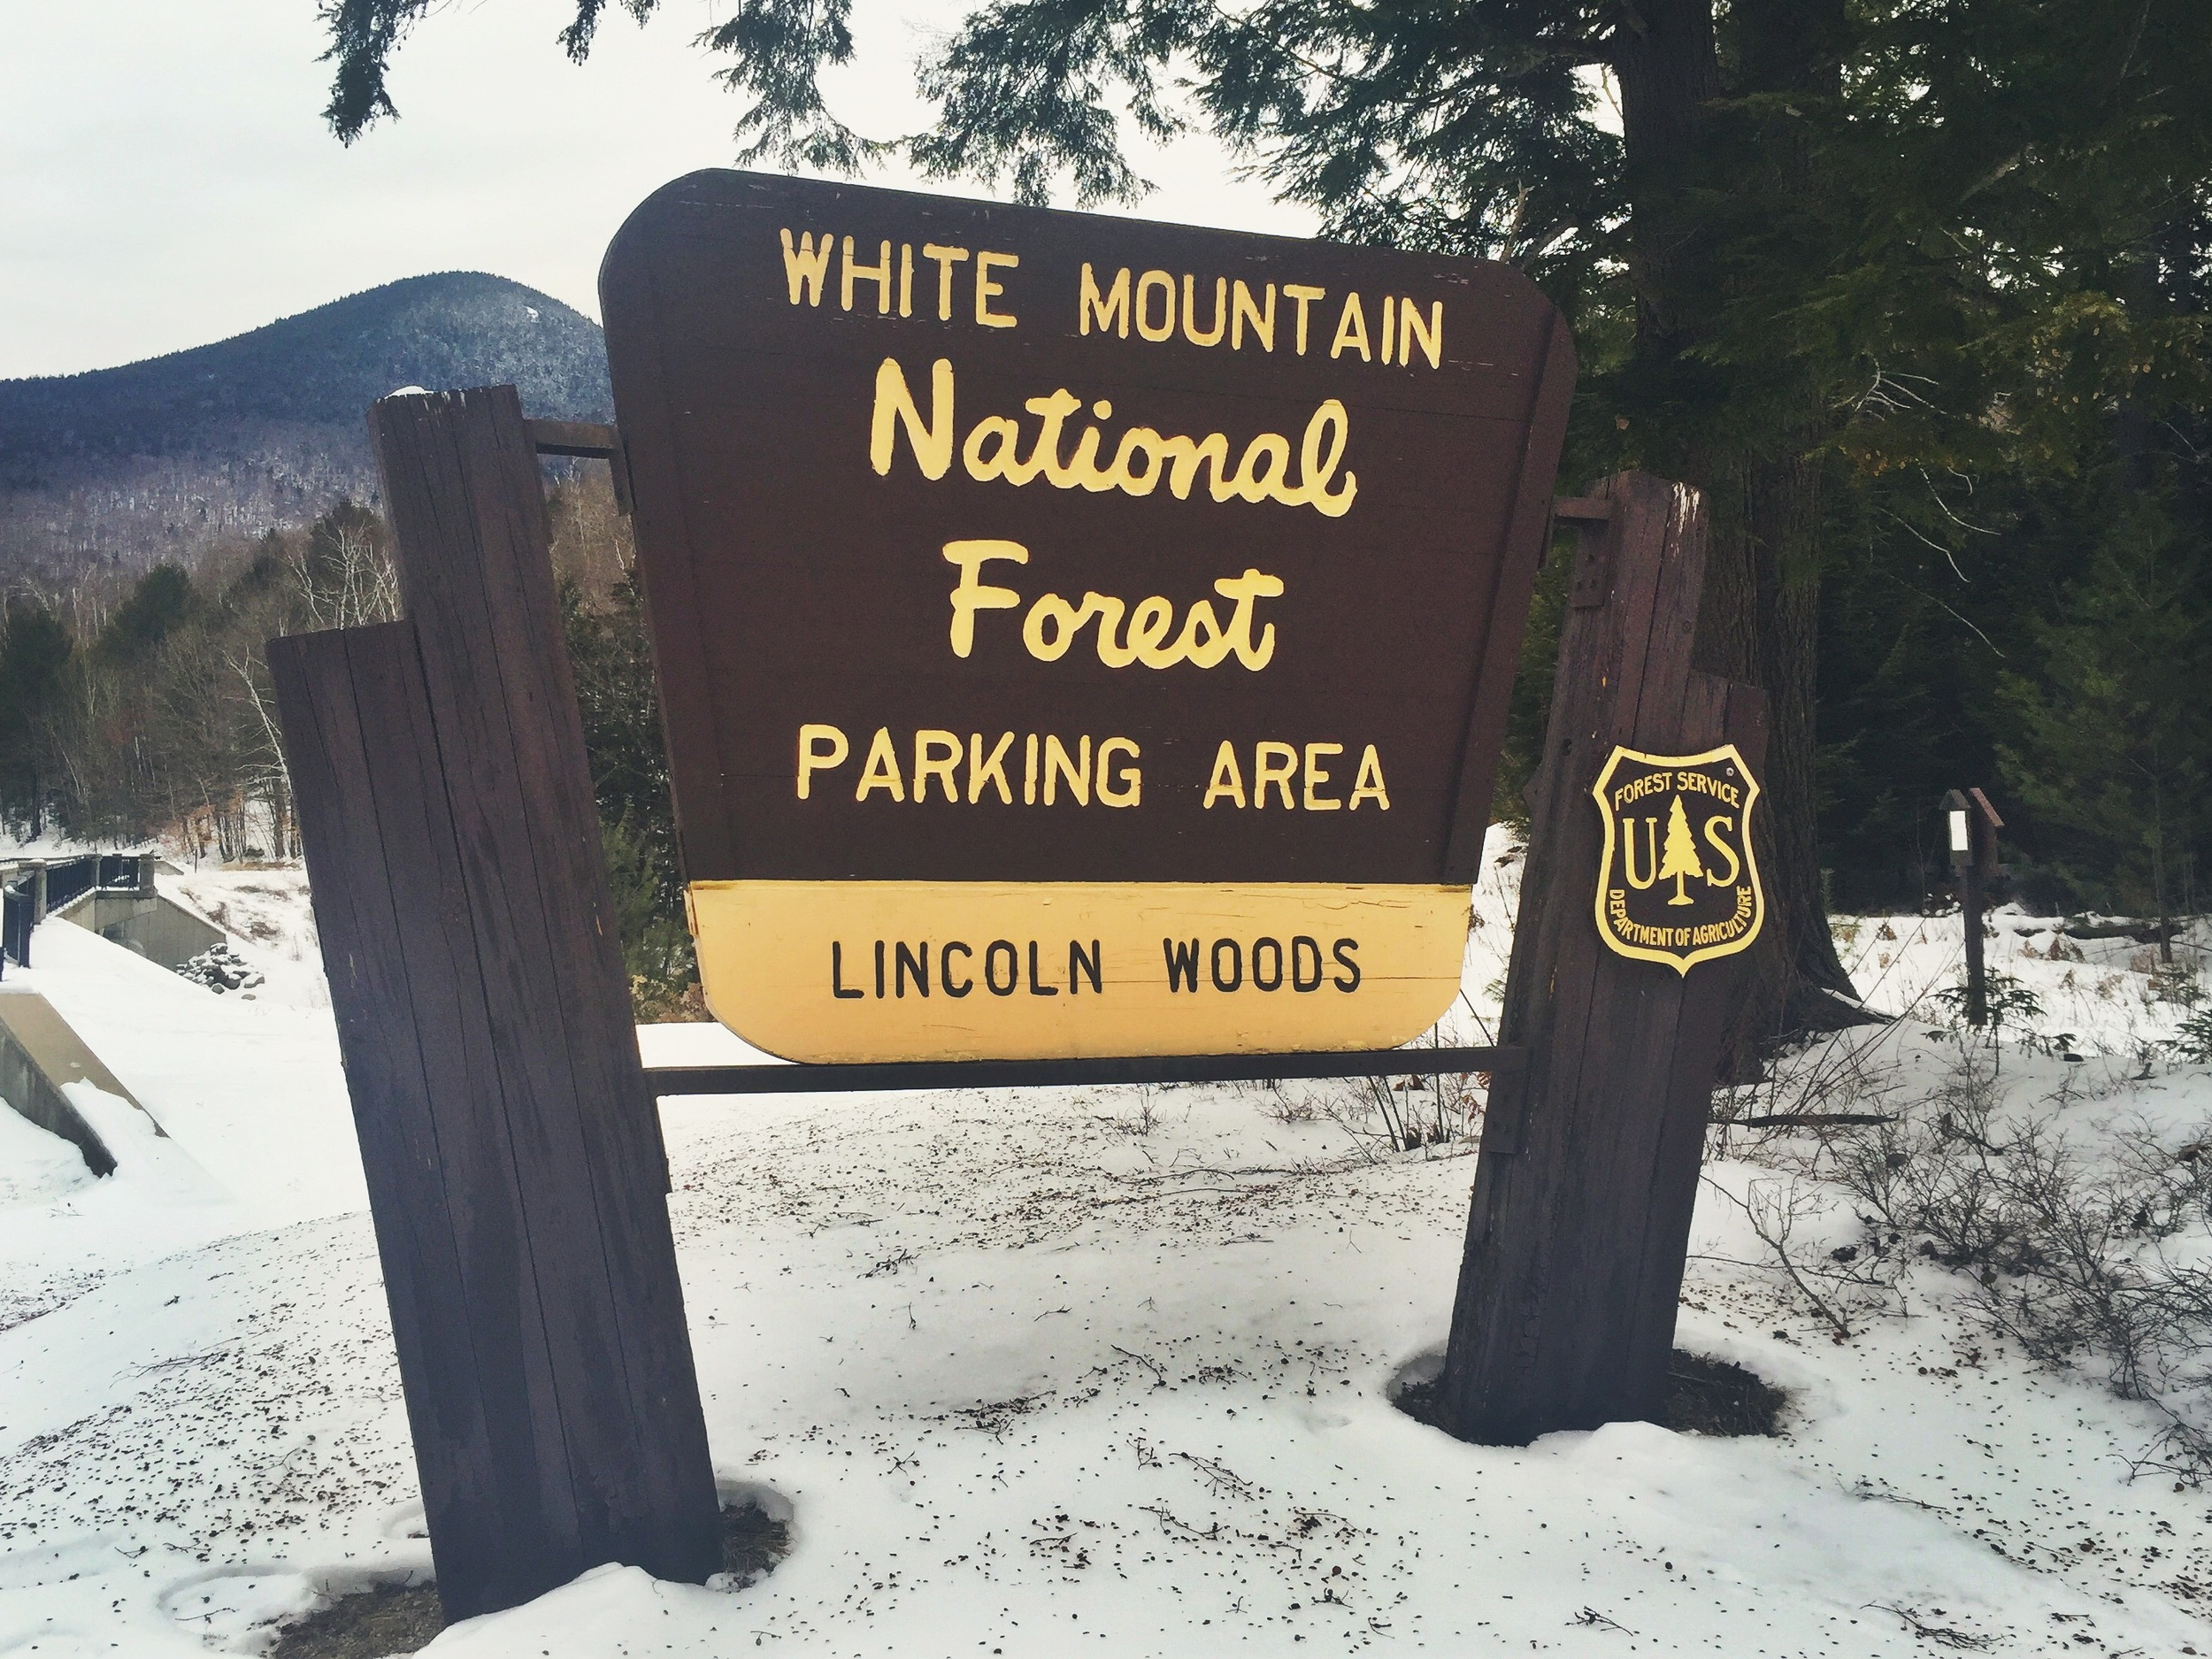 Lincoln Woods -the departure point for Pemigewasset Wilderness adventure